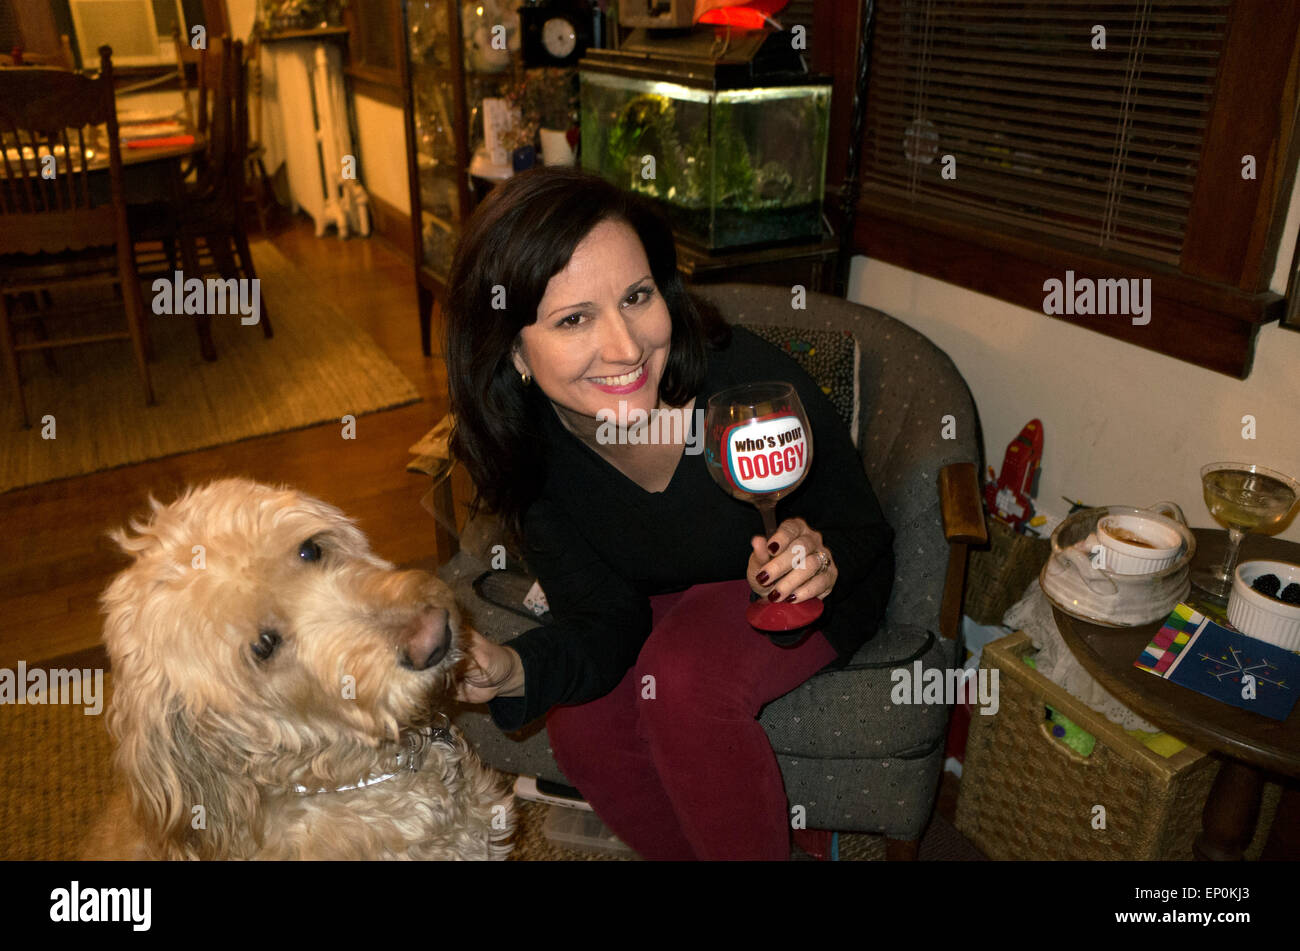 Woman displaying her 'Who's Your Doggy' wine glass with her Goldendoodle dog Gunnar at her birthday. - Stock Image